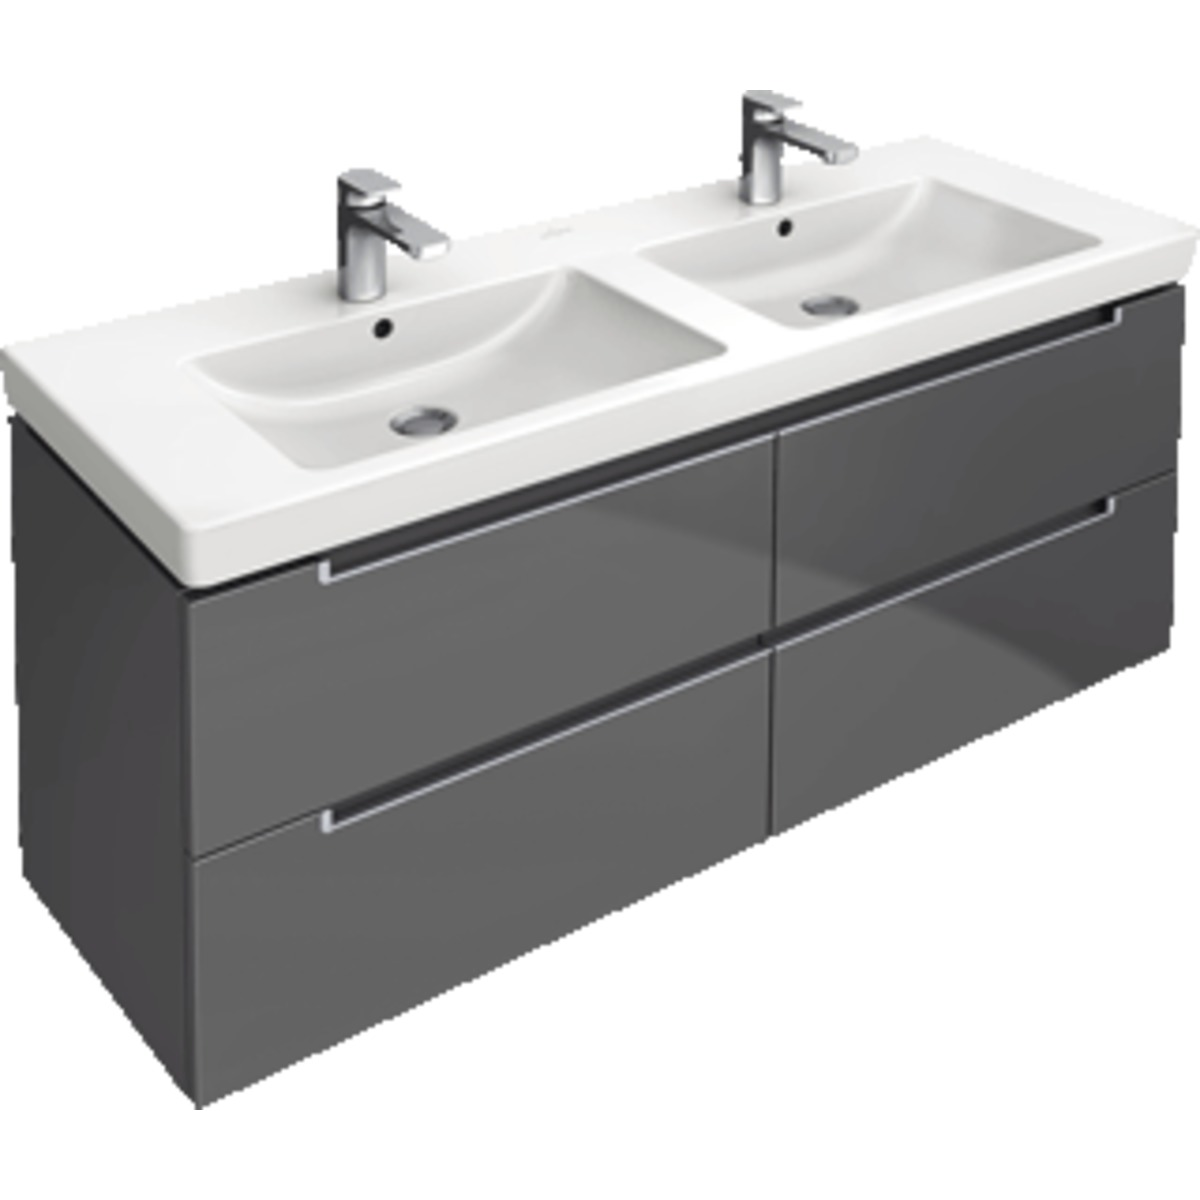 villeroy boch subway 2 0 meuble sous lavabo 128 7x44 9x52cm gris a69900fp. Black Bedroom Furniture Sets. Home Design Ideas